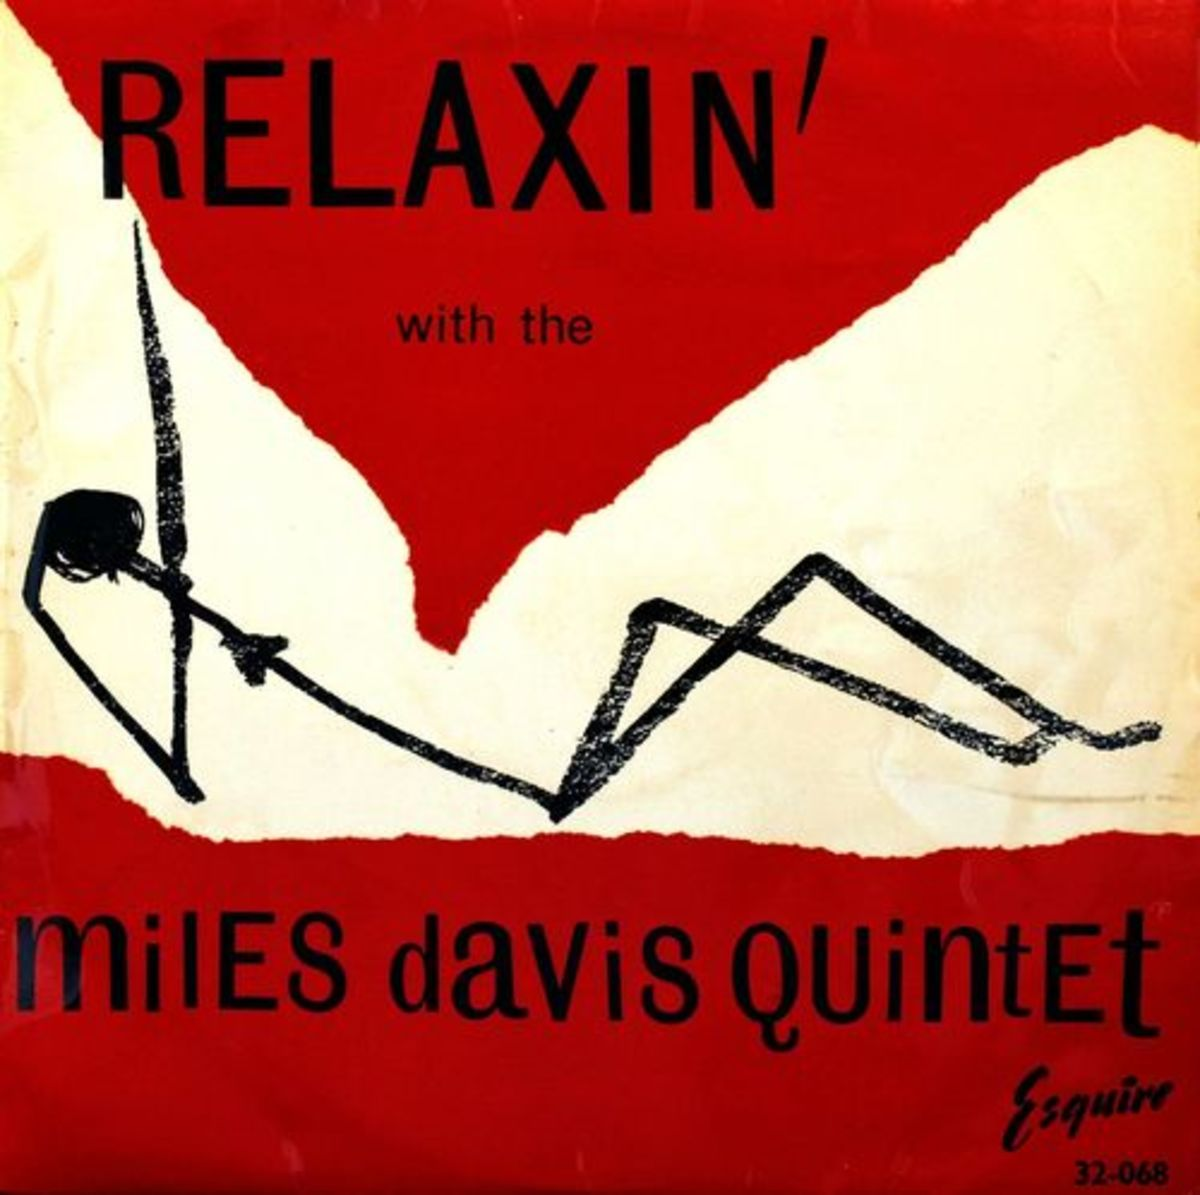 "Miles Davis ""Relaxin' with Miles Davis Quintet"" Esquire Records 32-068 12"" LP Vinyl Record 1956"